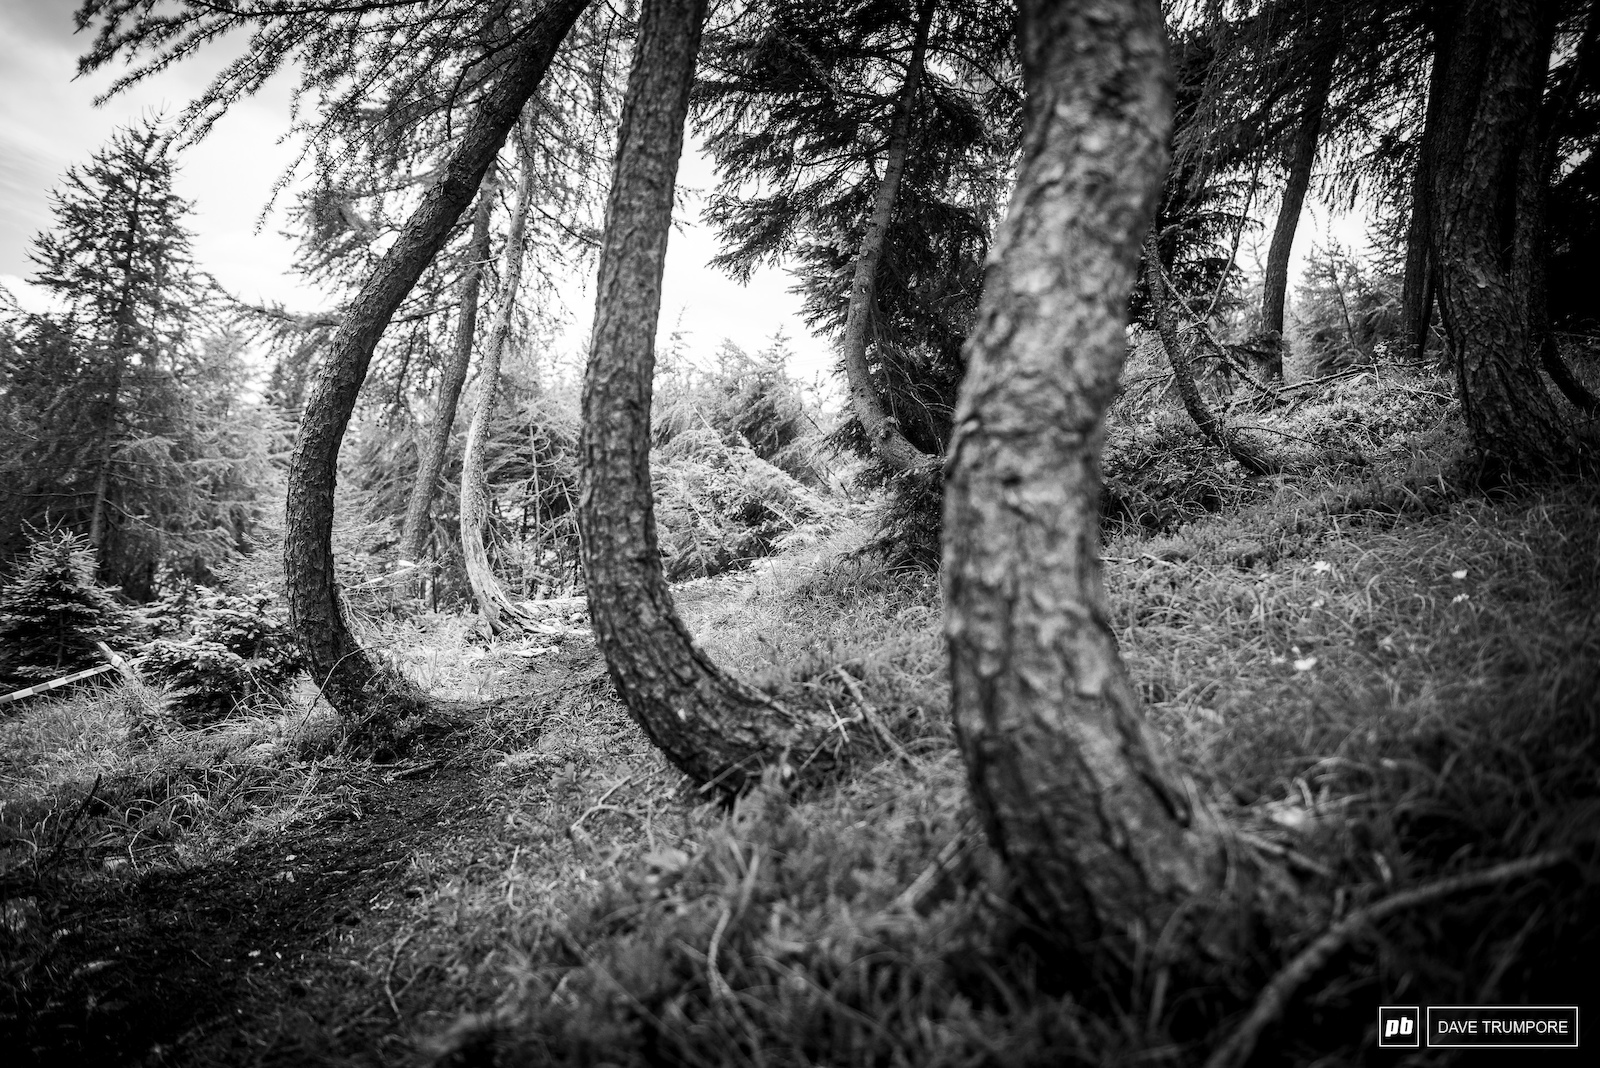 Bendy trees growing out of a steep hillside on Stage 3.